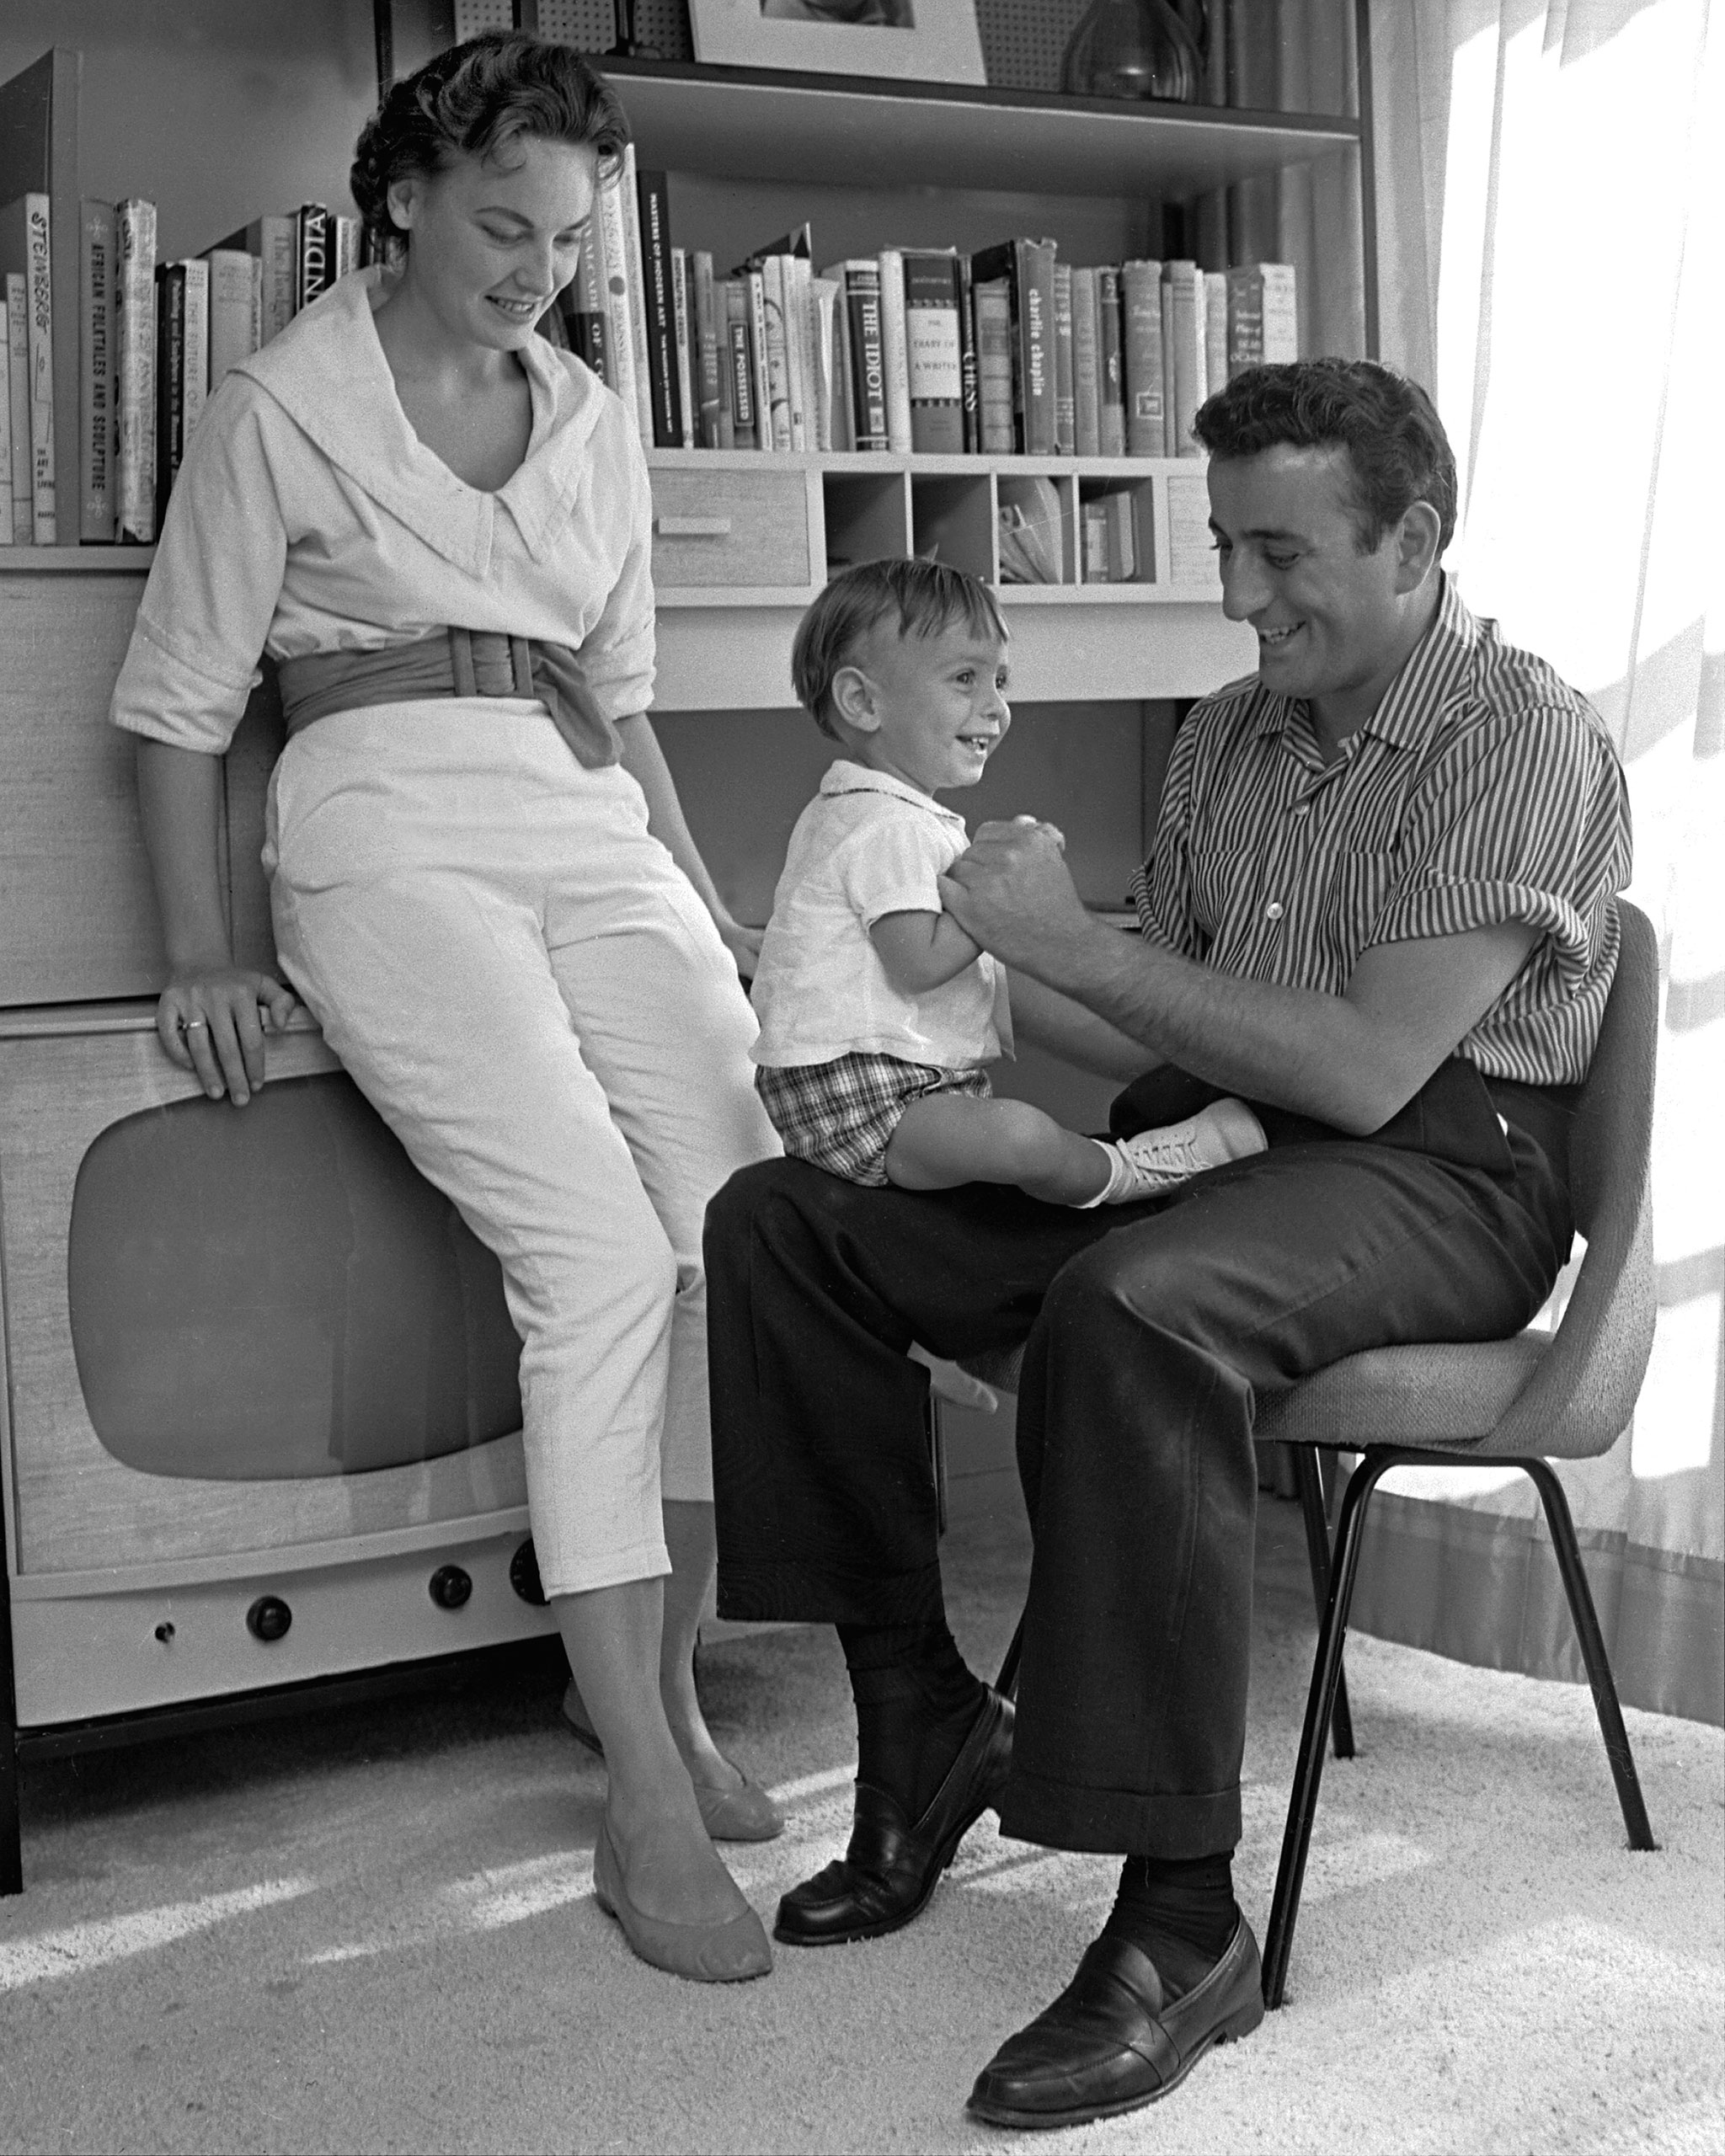 Tony Bennett and his wife, Sandy, plays with their young son, D'Andrea, in their apartment in the Riverdale section of the Bronx.